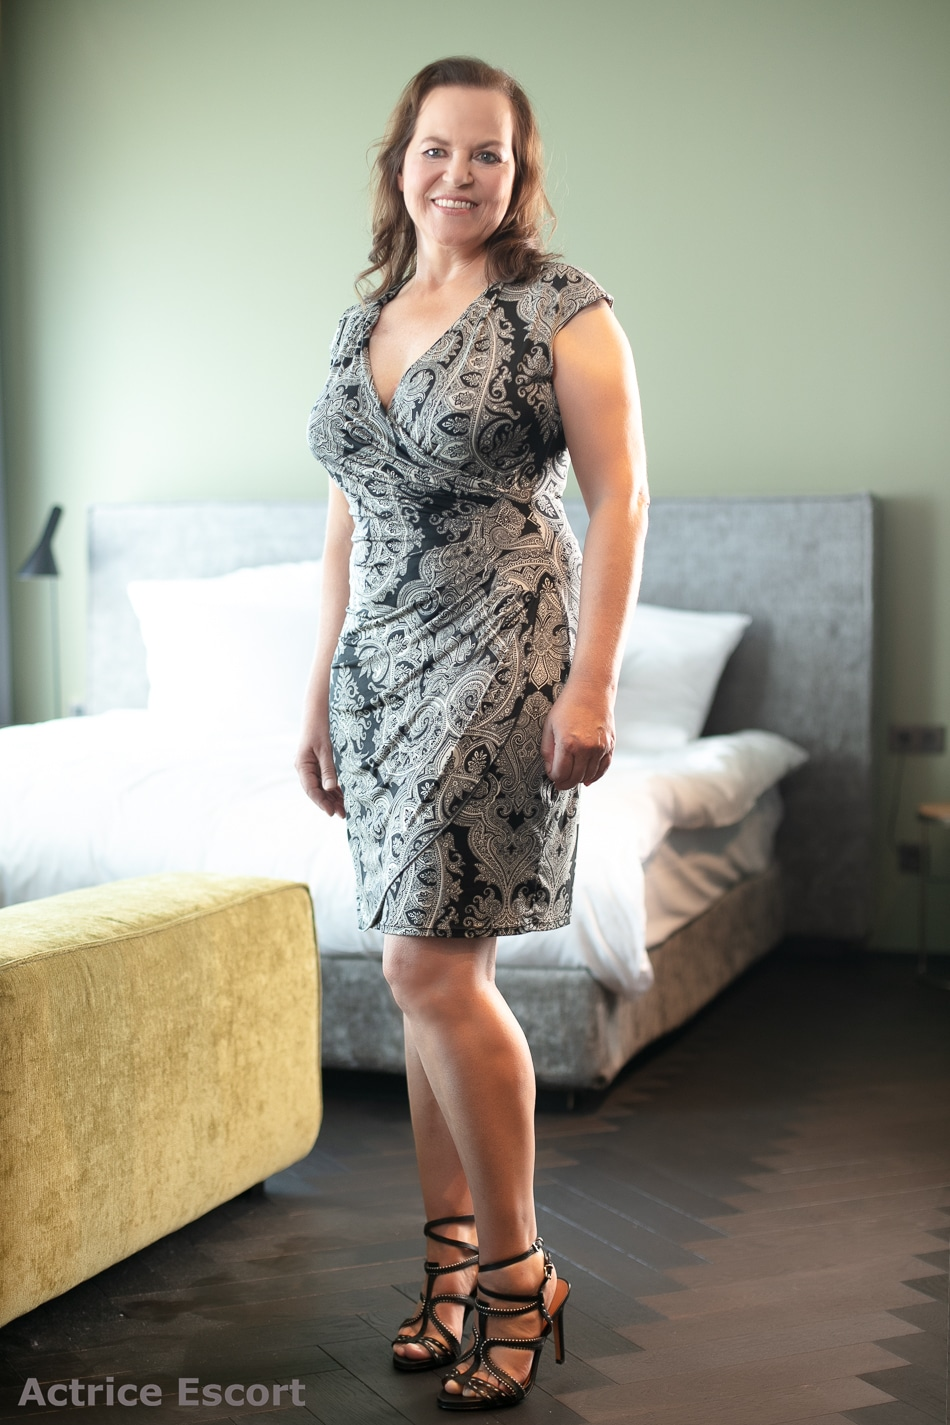 Bettina Escortservice Duesseldorf(16)